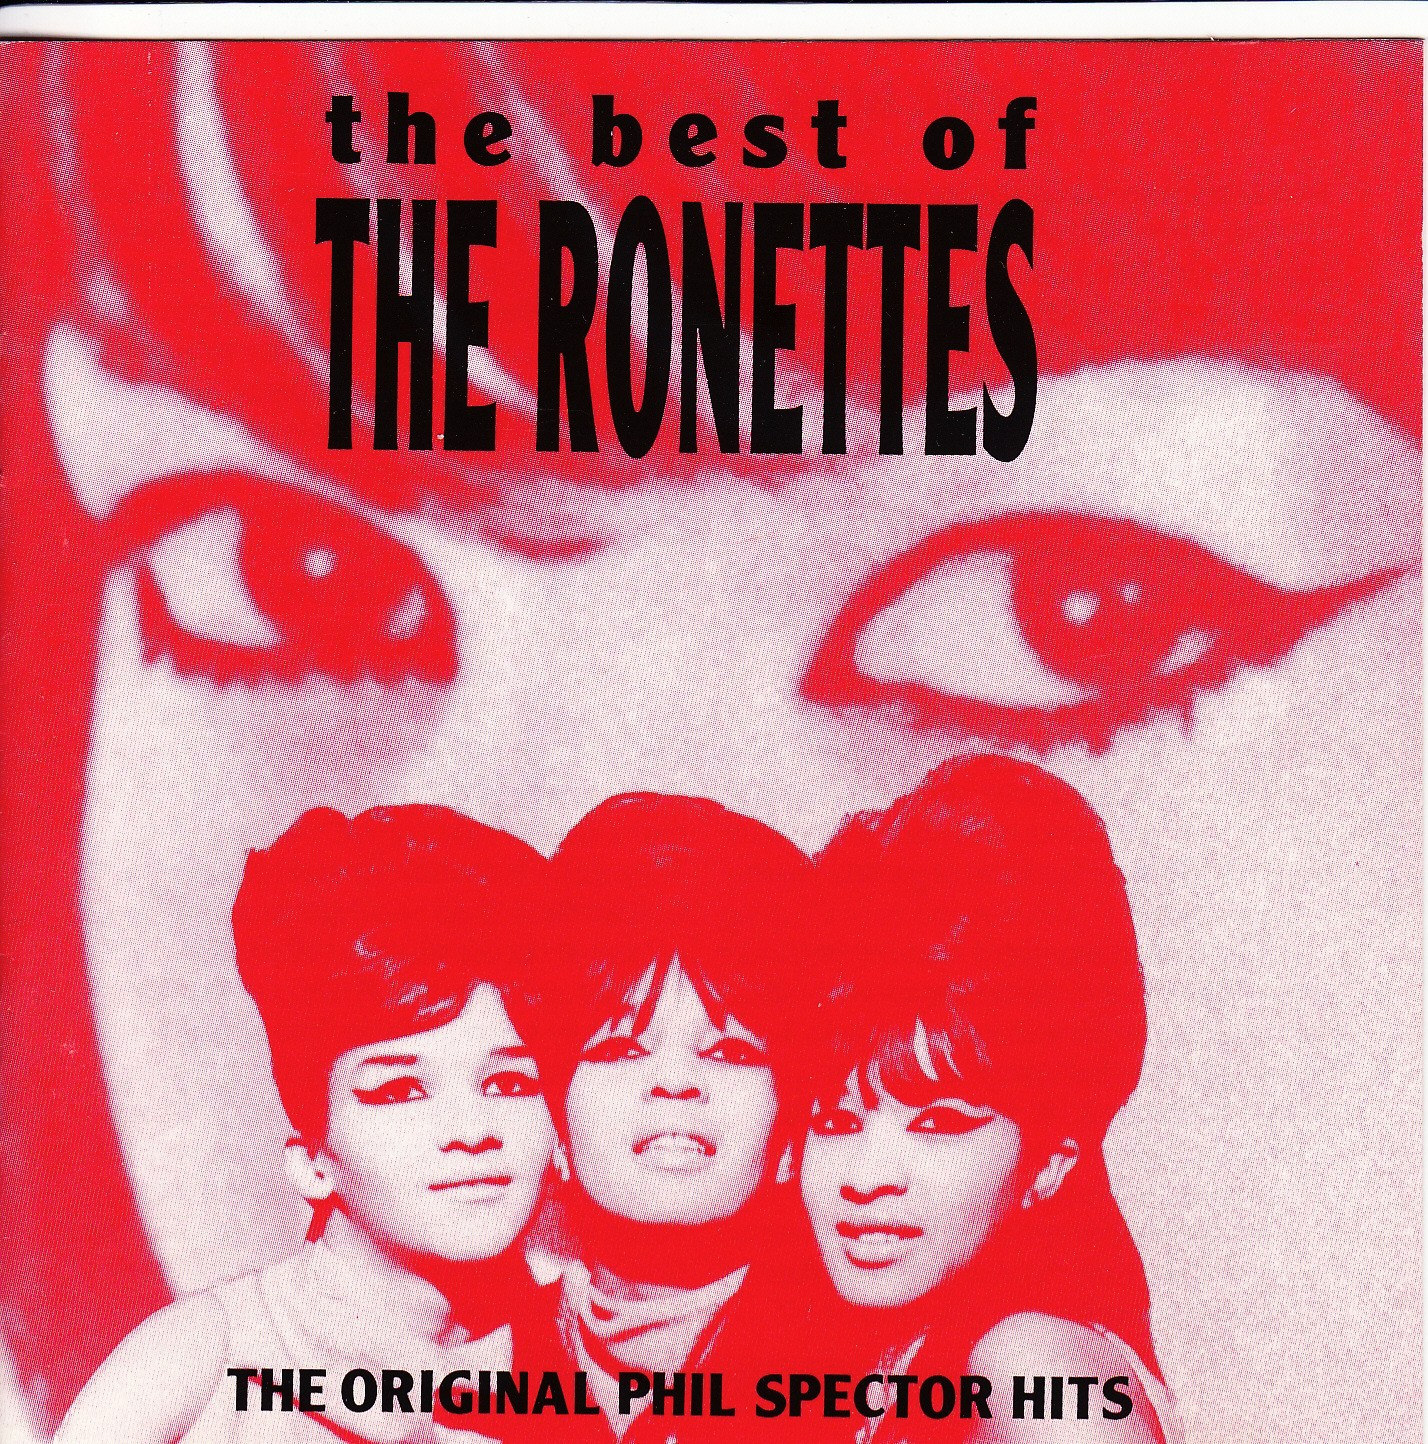 http://4.bp.blogspot.com/-D1mZIFdXFVc/TmSw3zrw3rI/AAAAAAAAByc/TbI386OD6y4/s1600/_the_ronettes+front.jpg